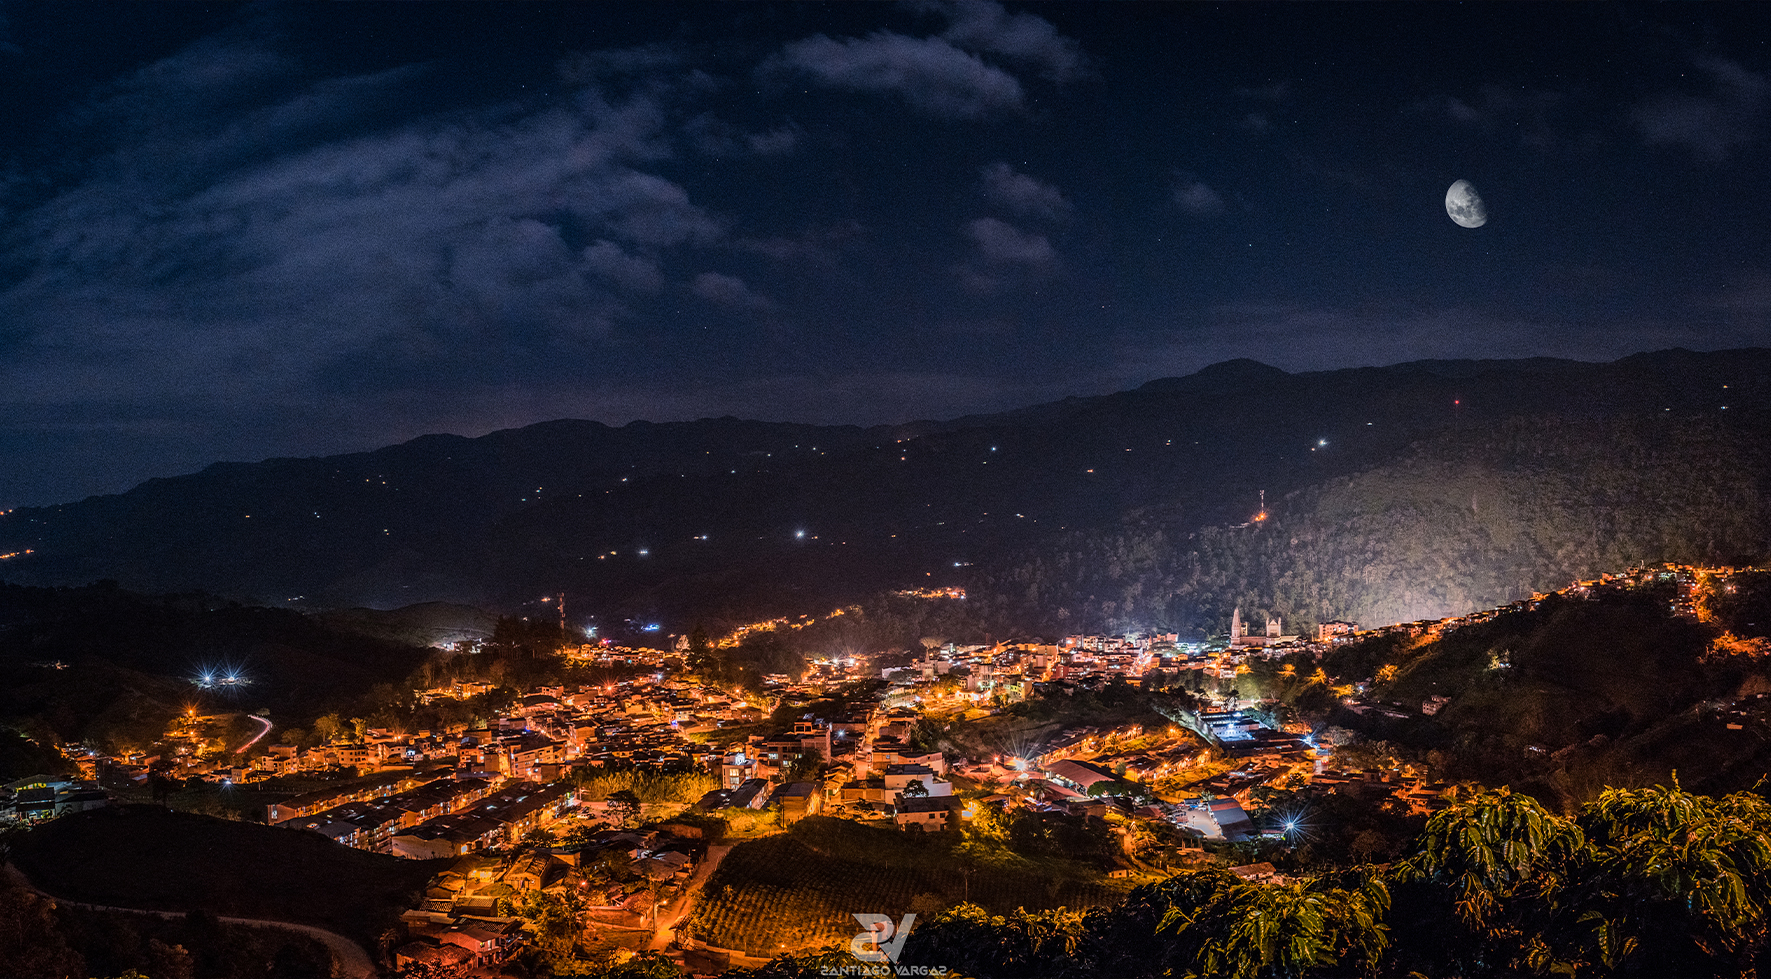 ANDES NOCTURNA